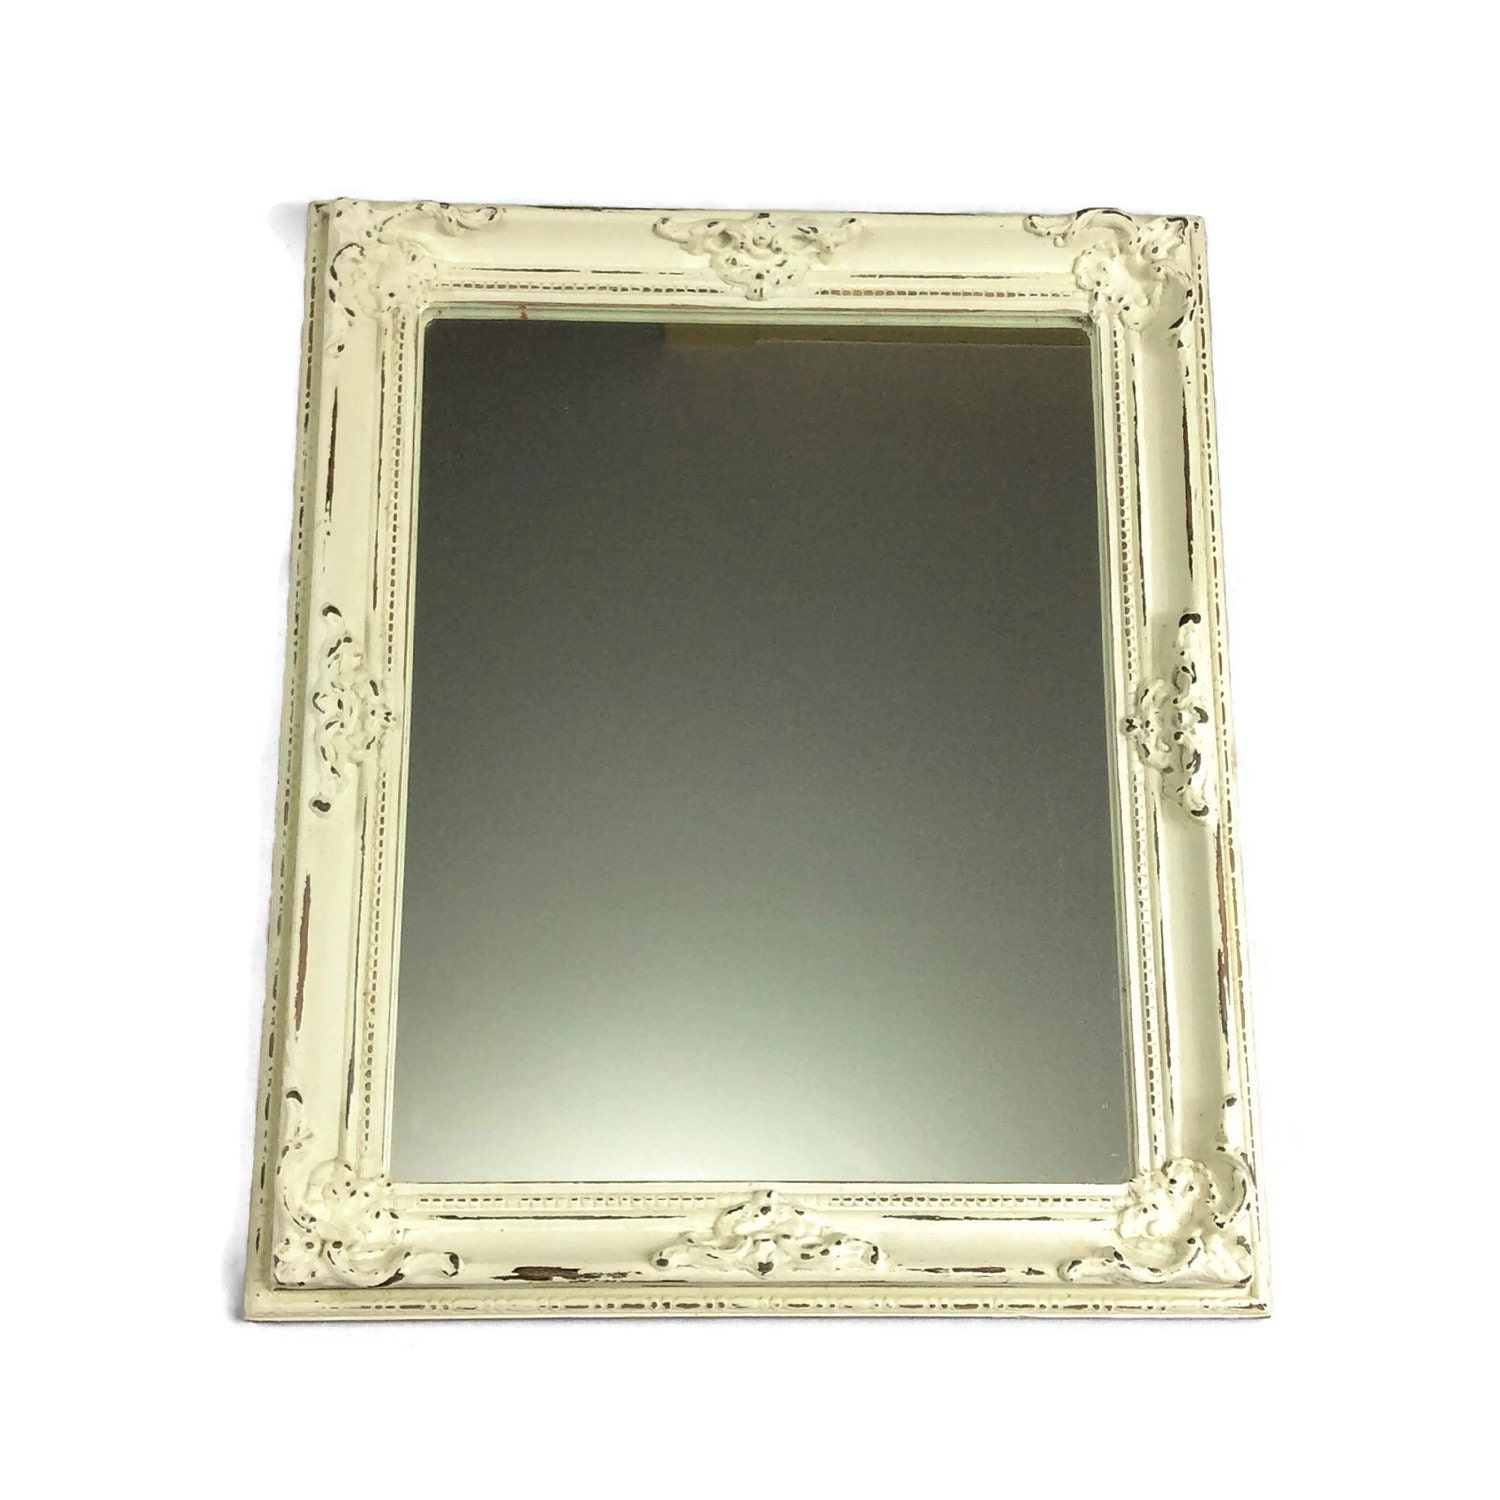 Mirror for sale shabby chic home decor white mirror - Shabby chic decor for sale ...